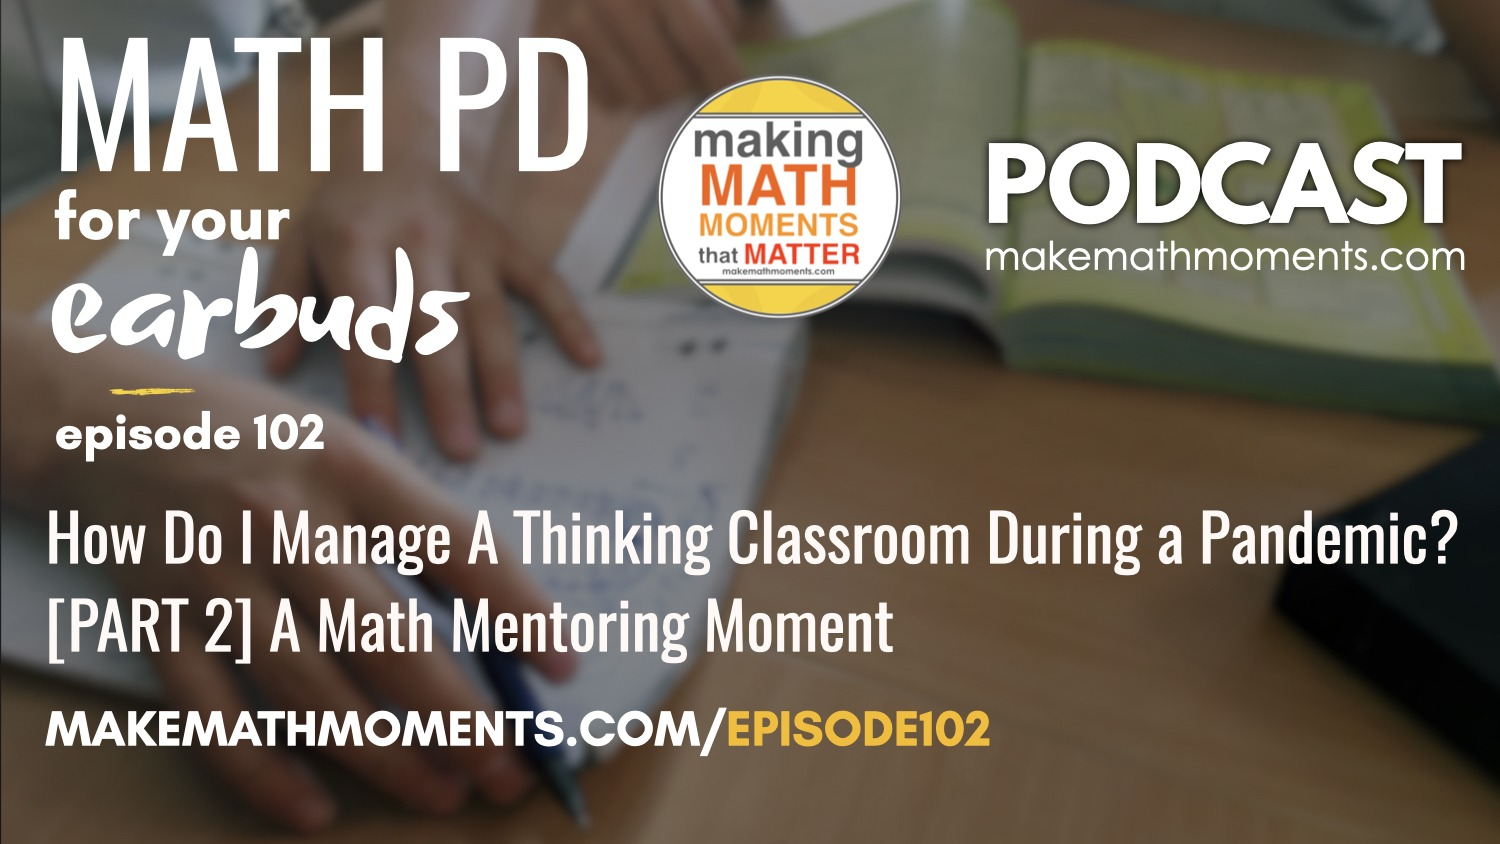 Episode #102: How Do I Manage A Thinking Classroom During a Pandemic? [PART 2] A Math Mentoring Moment